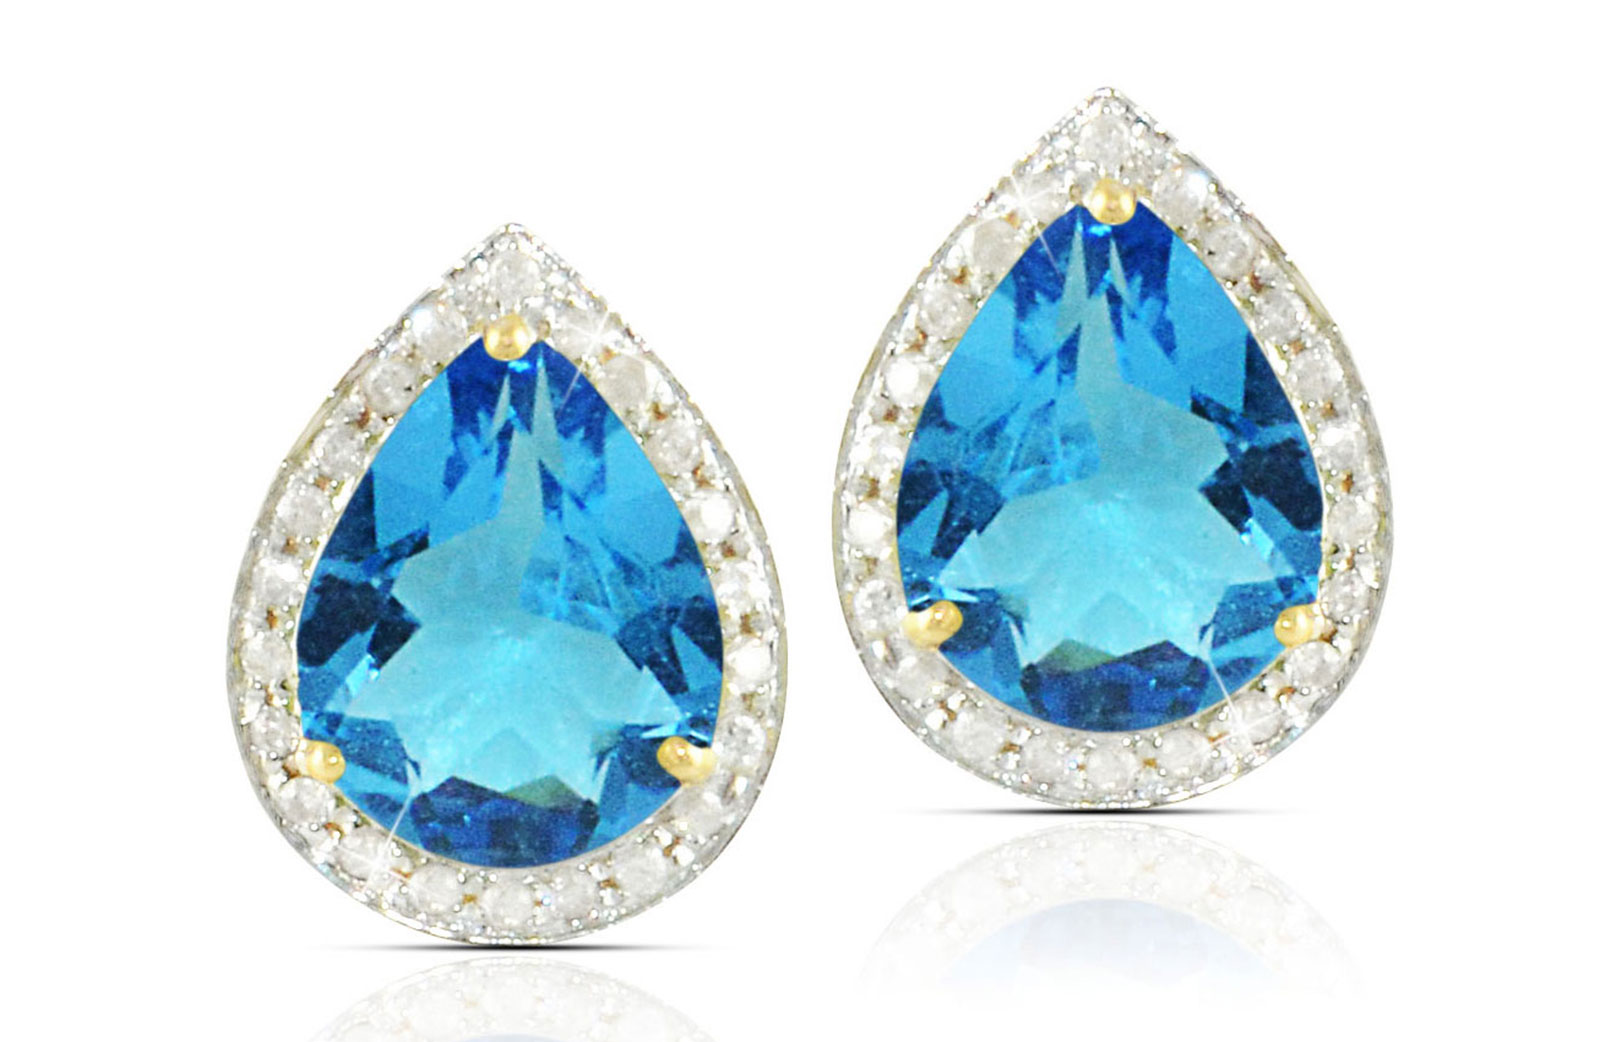 Vera Perla 18k  Gold 10mm Genuine Drop  Cut Swiss Blue Topaz 0.24Ct Genuine Diamonds earrings